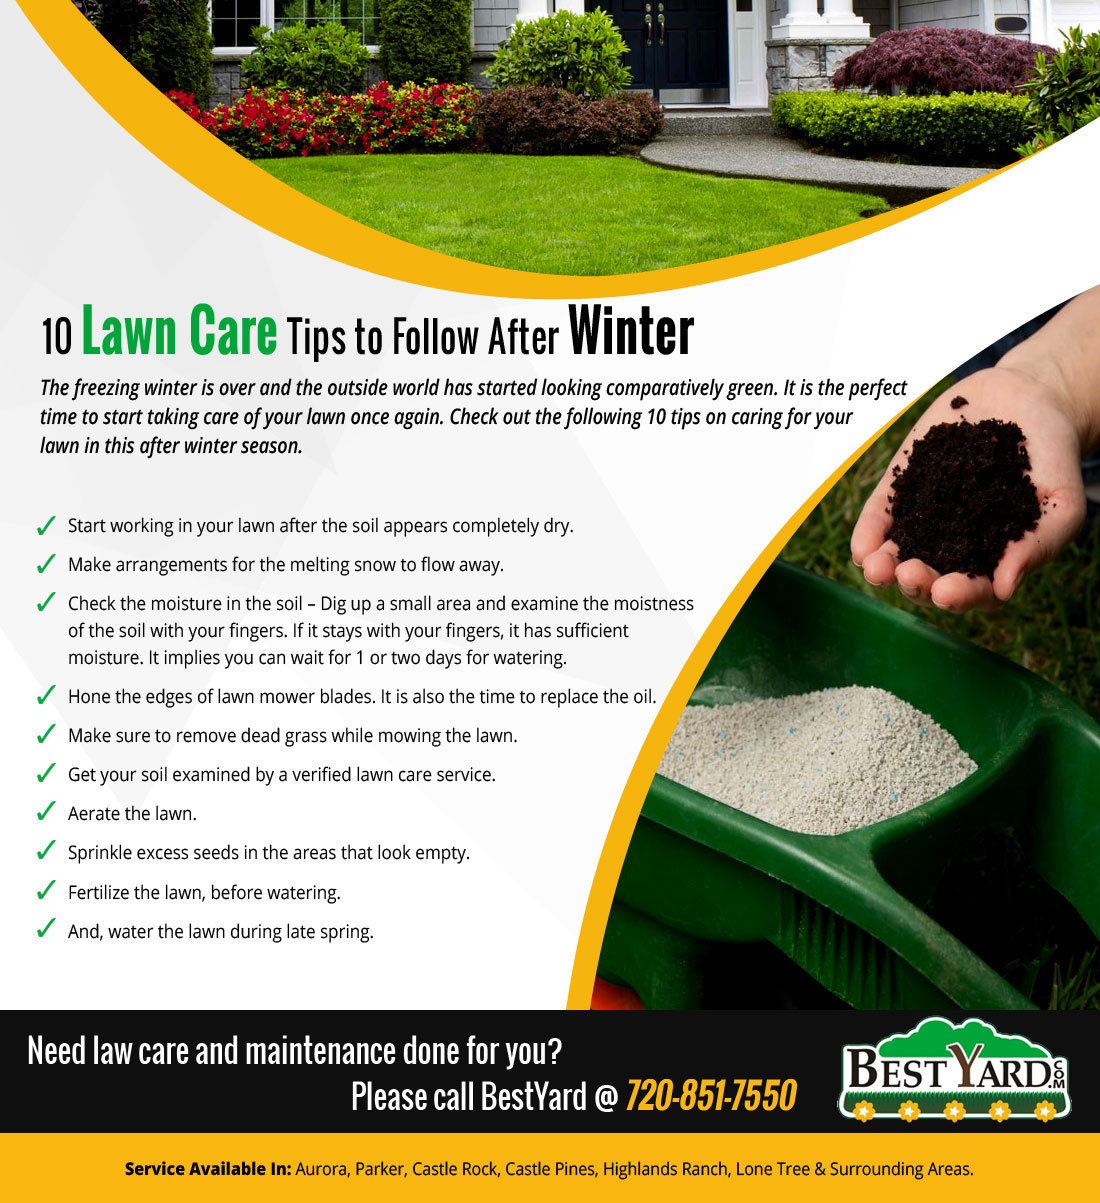 Lawn Care Tips To Follow After Winter